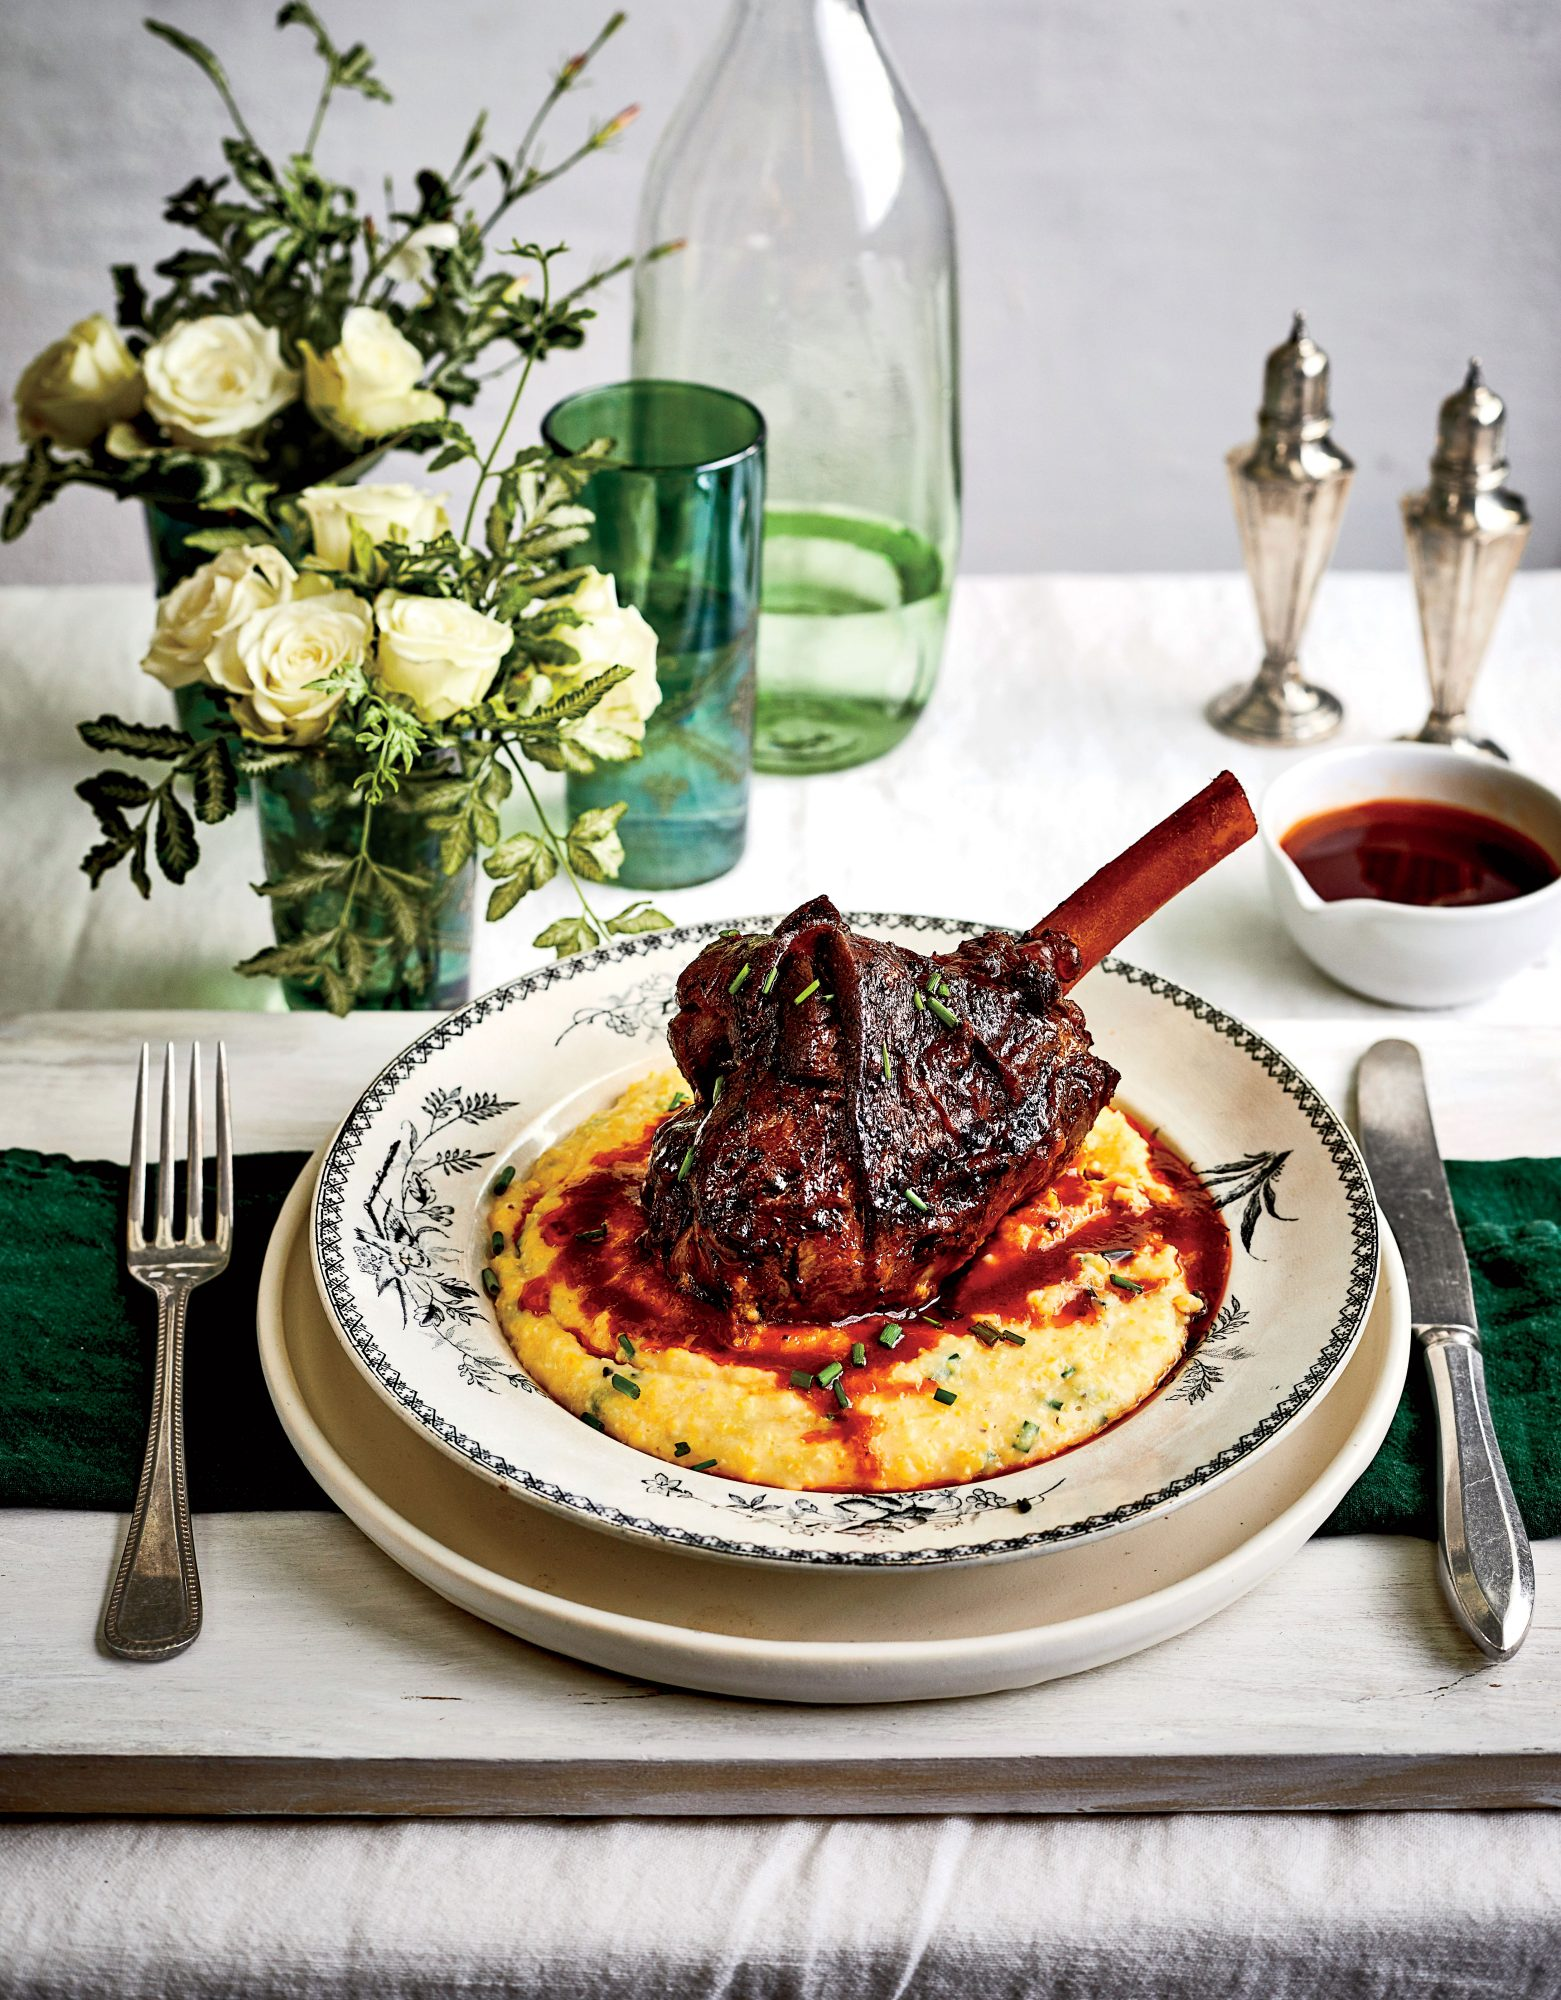 Braised Lamb Shanks with Parmesan-Chive Grits Recipe